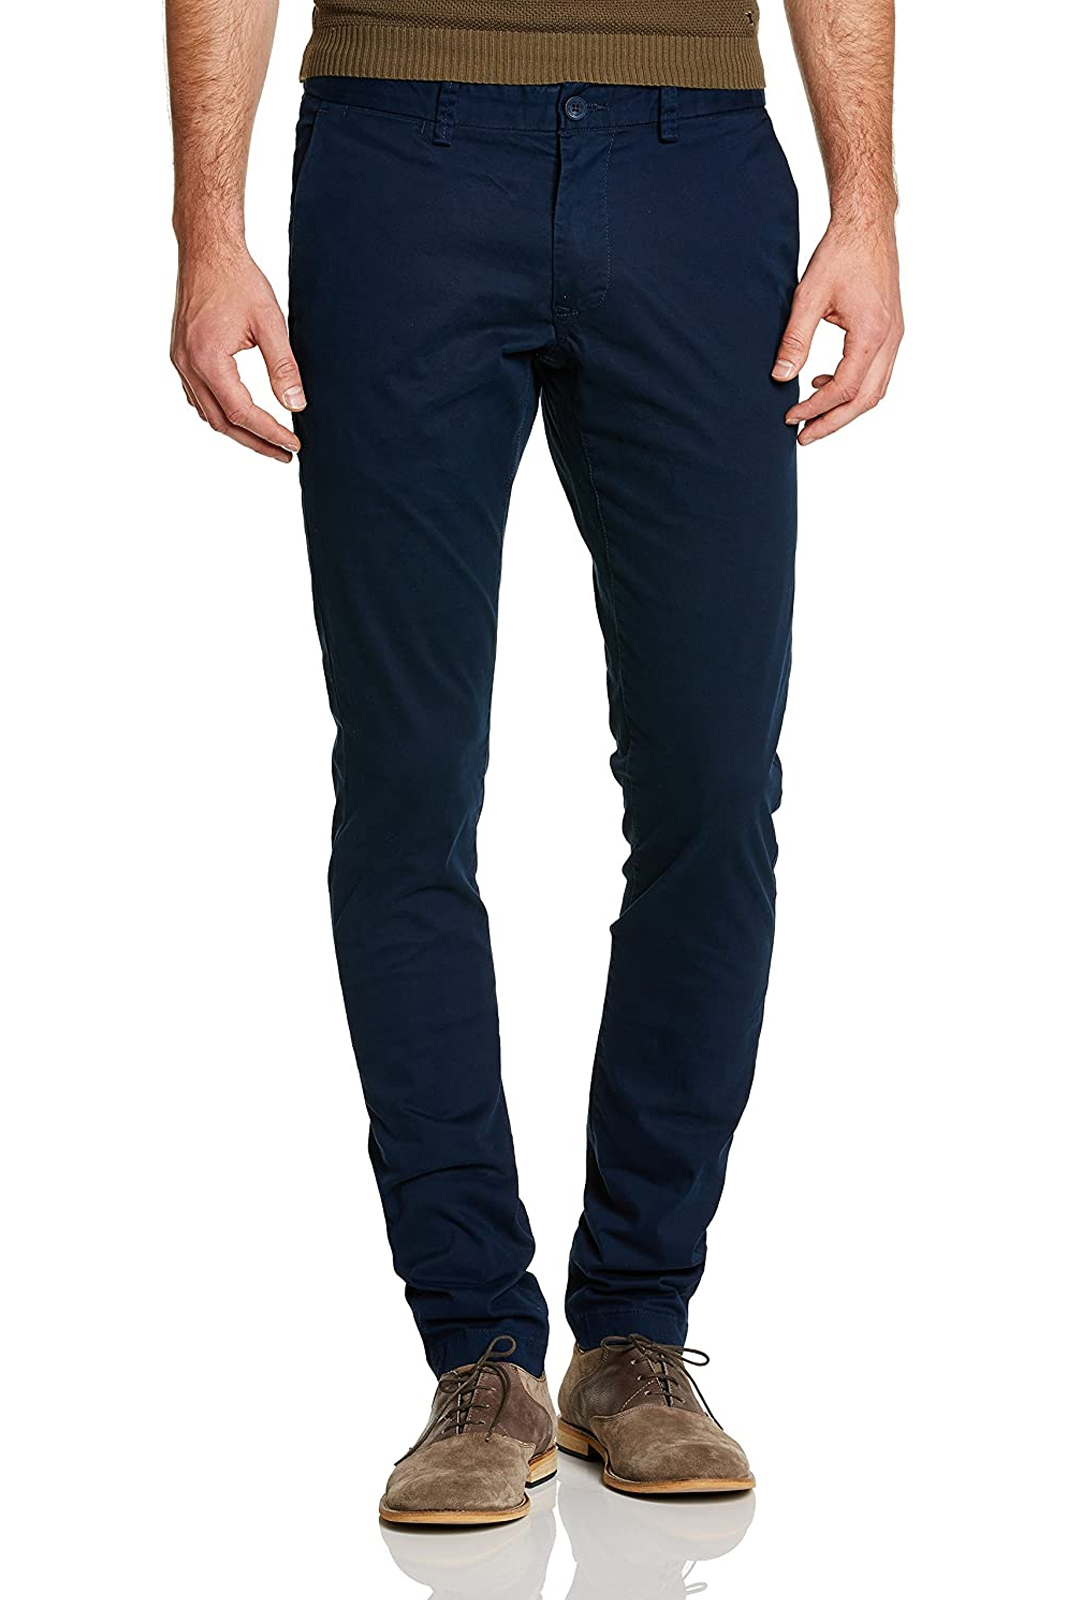 Pantalons chino/citadin  Teddy smith CHINO STRETCH 303U-US NAVY